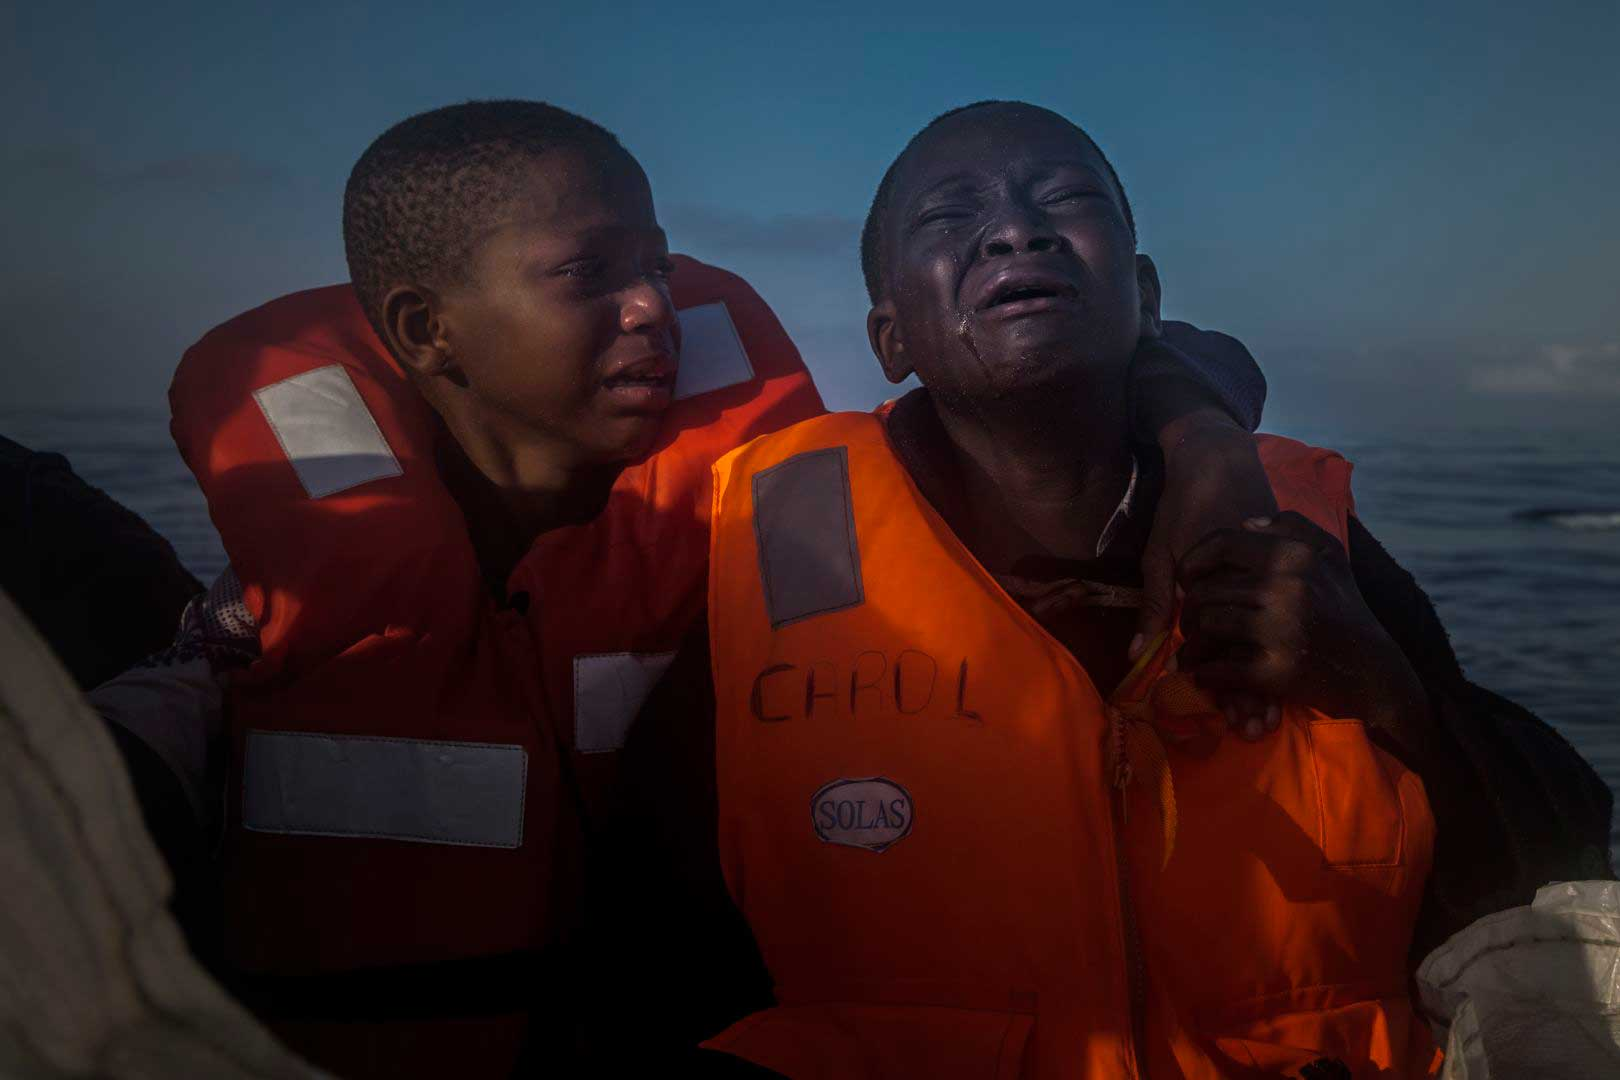 An 11-year-old girl from Nigeria (left), who said her mother died in Libya, cries next to her 10-year-old brother aboard an NGO rescue boat, on July 28, 2016.